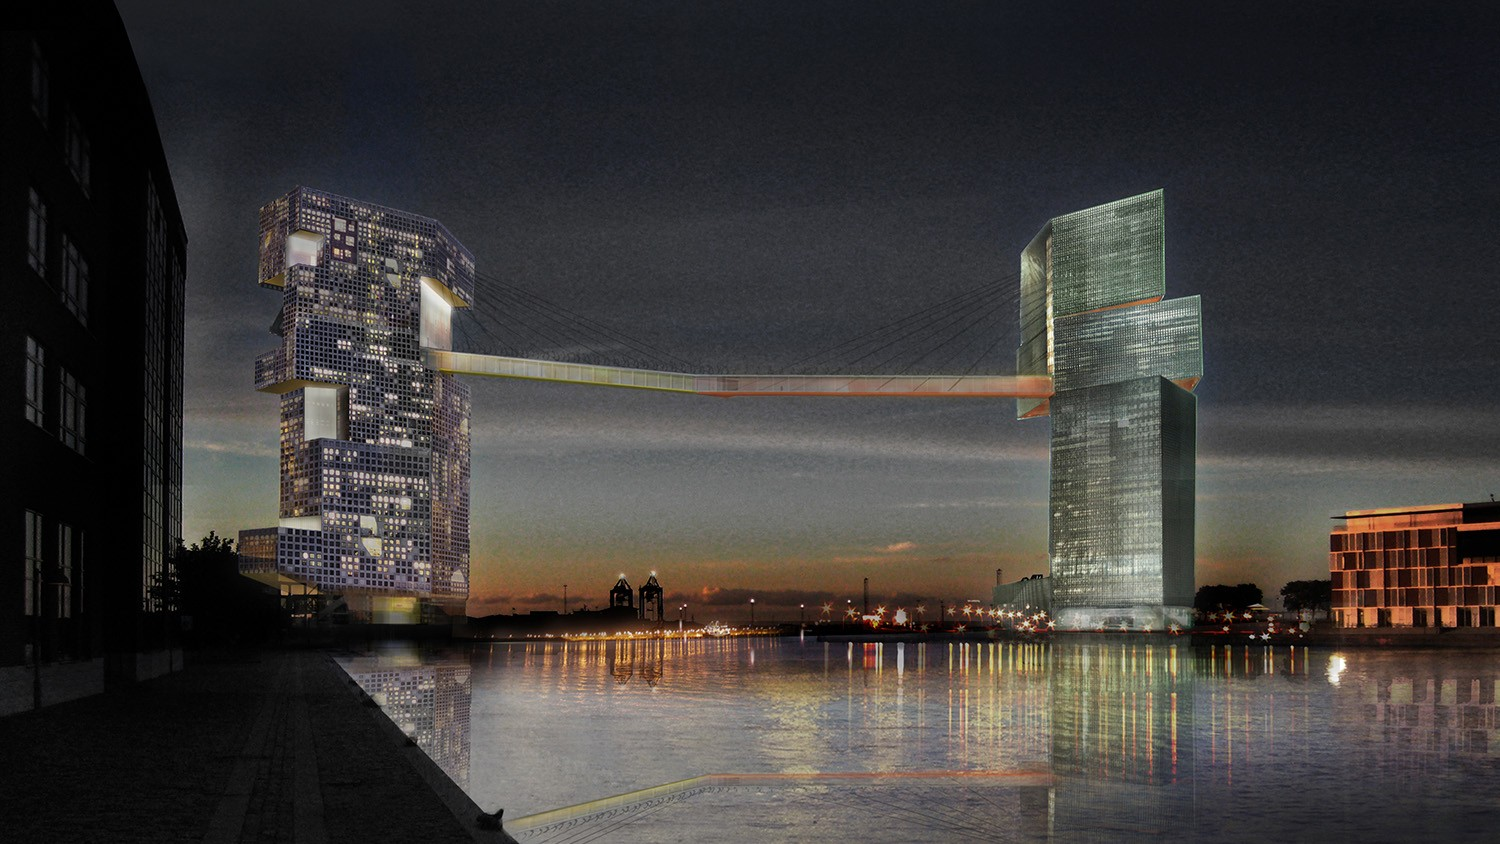 https://stevenholl.sfo2.digitaloceanspaces.com/uploads/projects/project-images/StevenHollArchitects_LM_NightView_WH.jpg